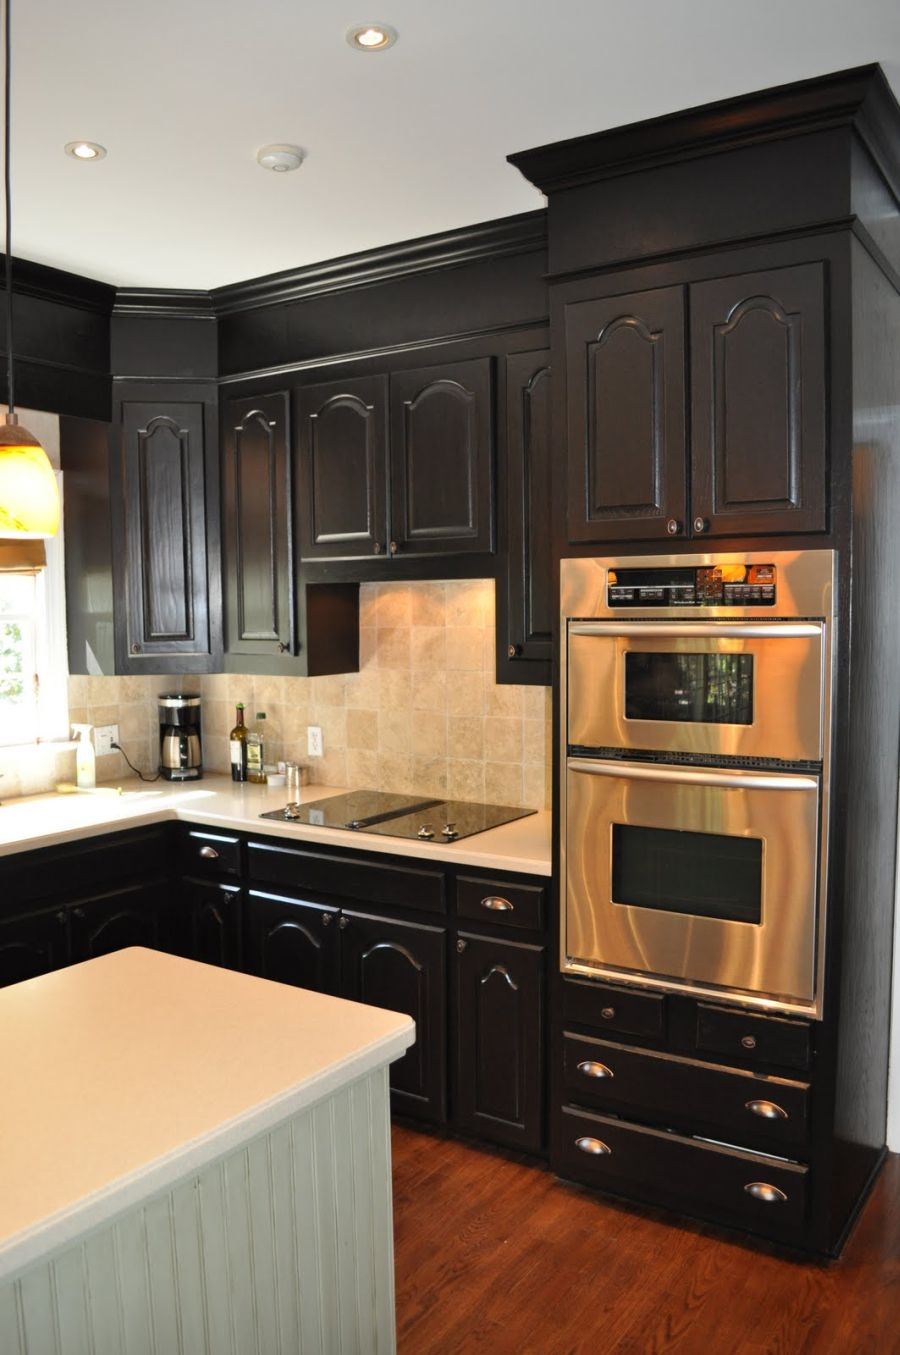 Merveilleux Black Cabinets With Soffits.